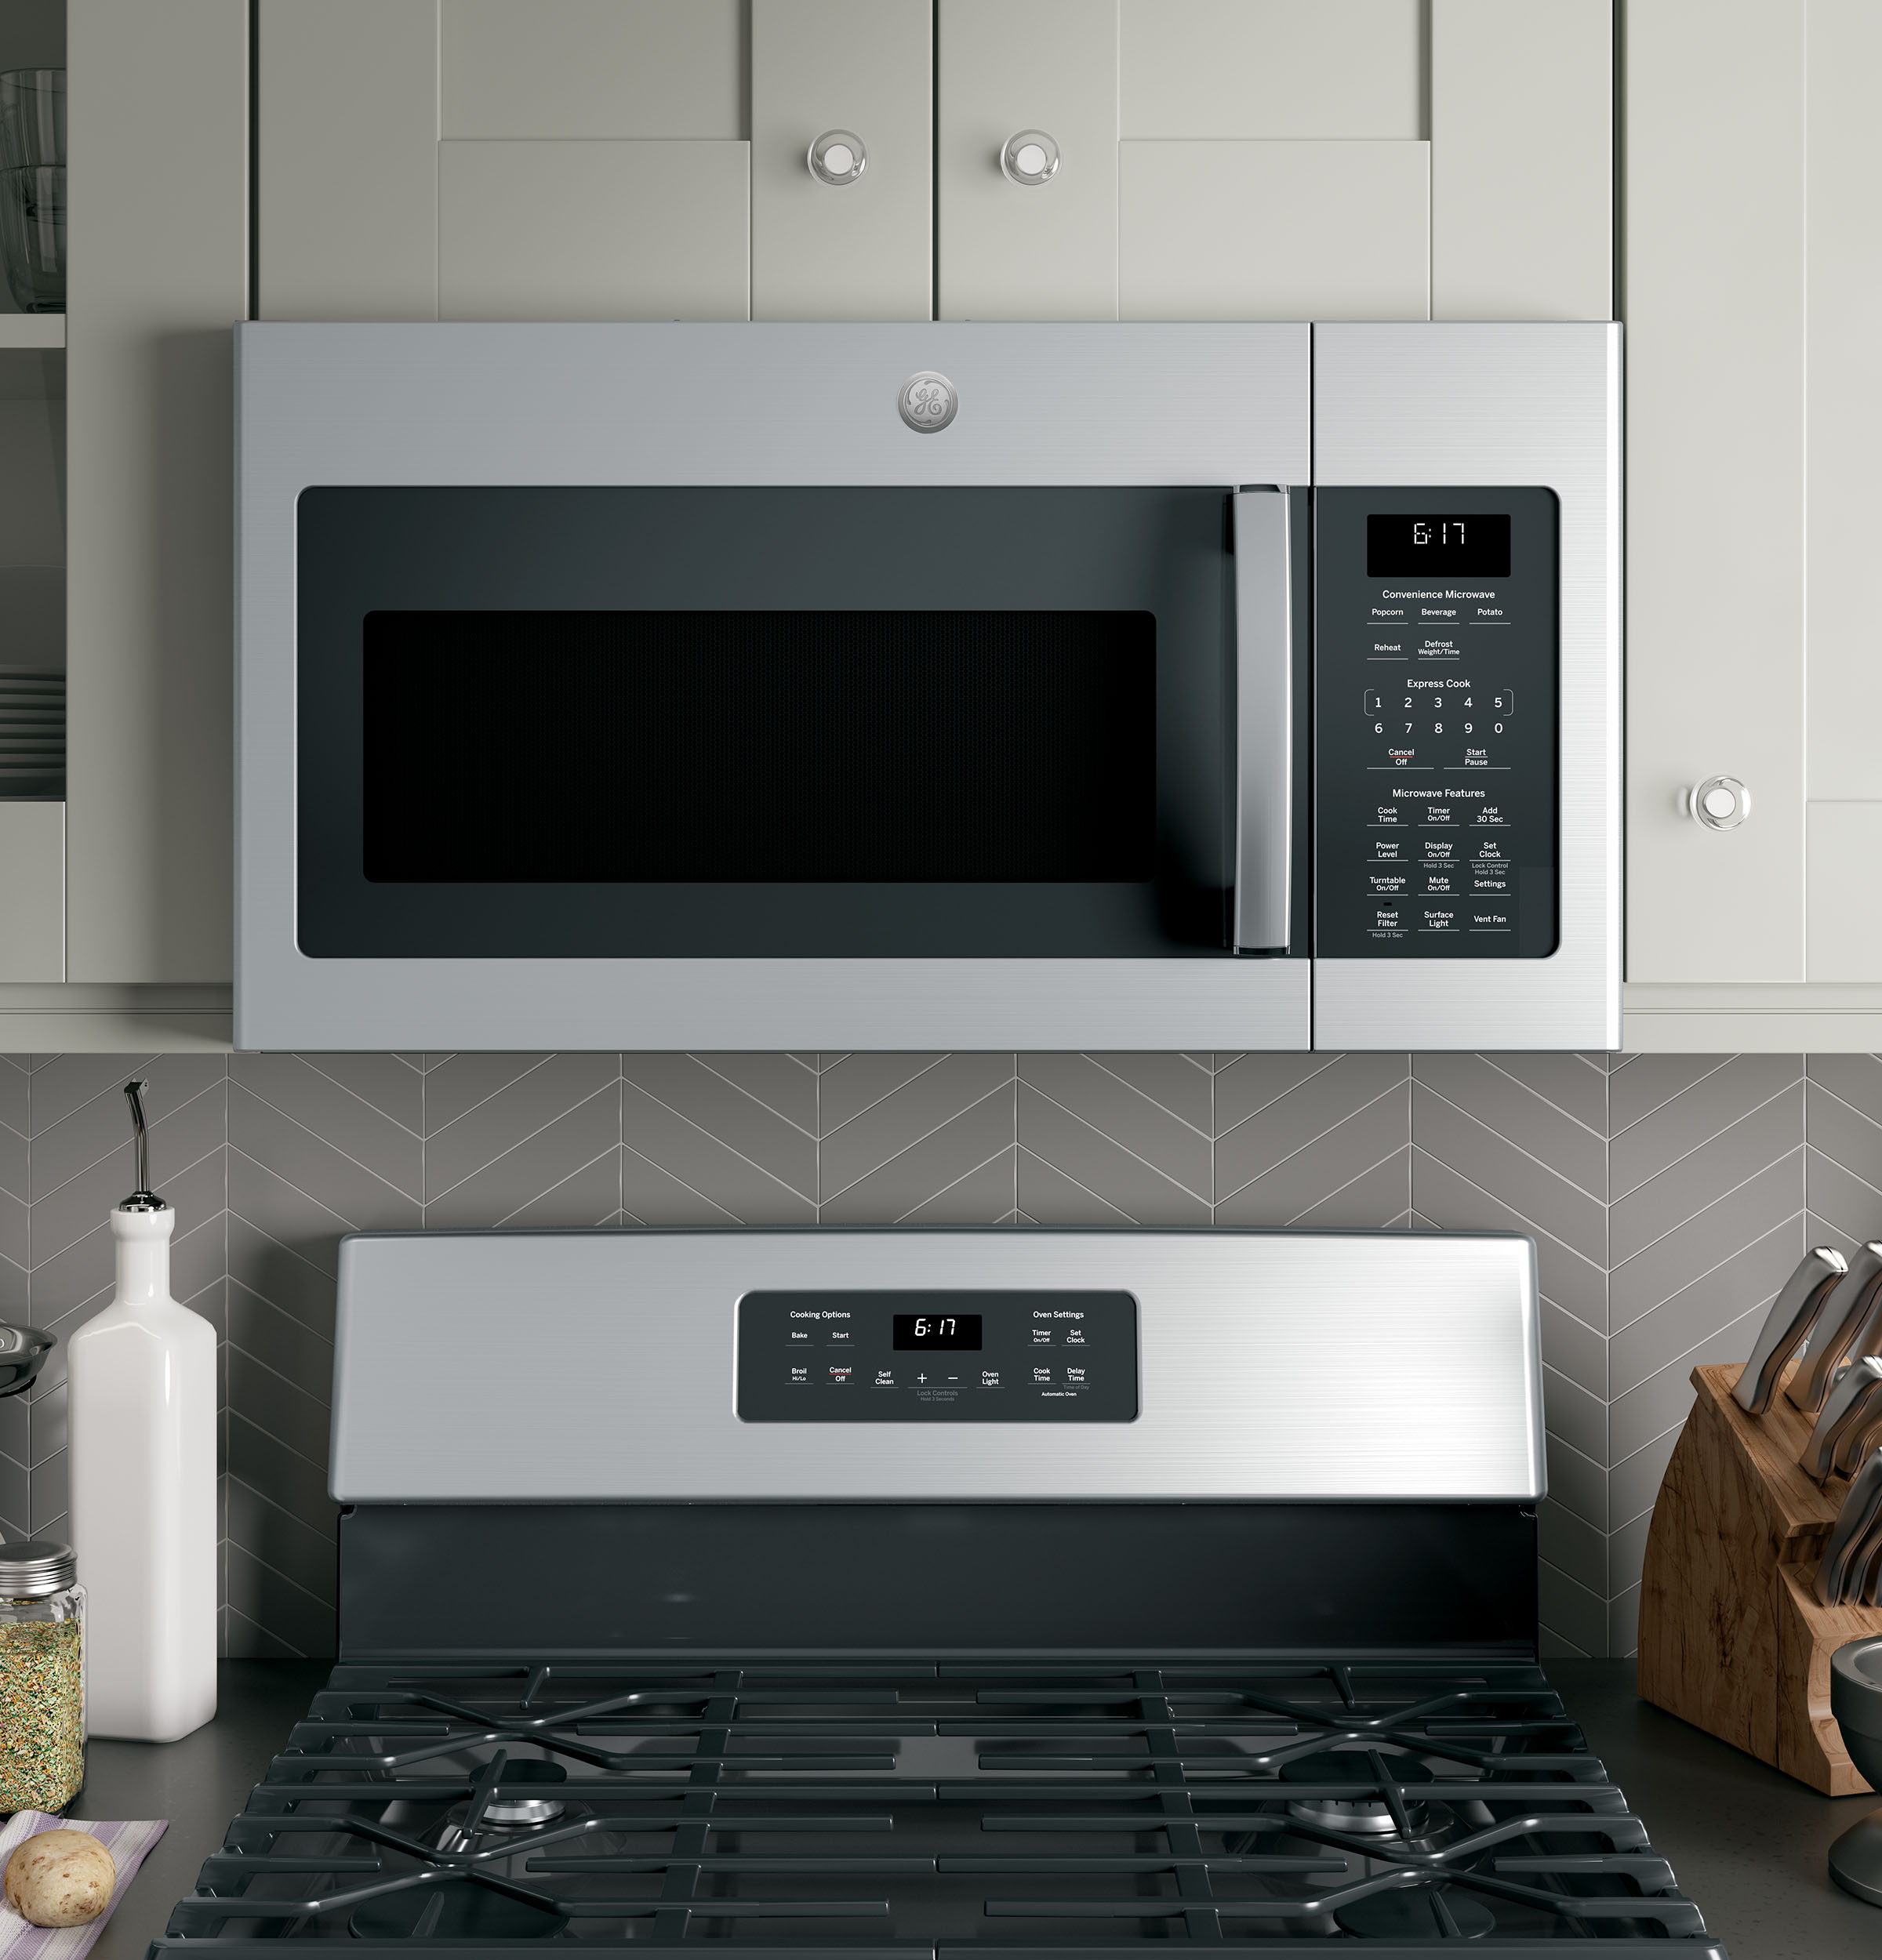 Ge 1 7 Cu Ft Over The Range Microwave Oven Jvm6172skss